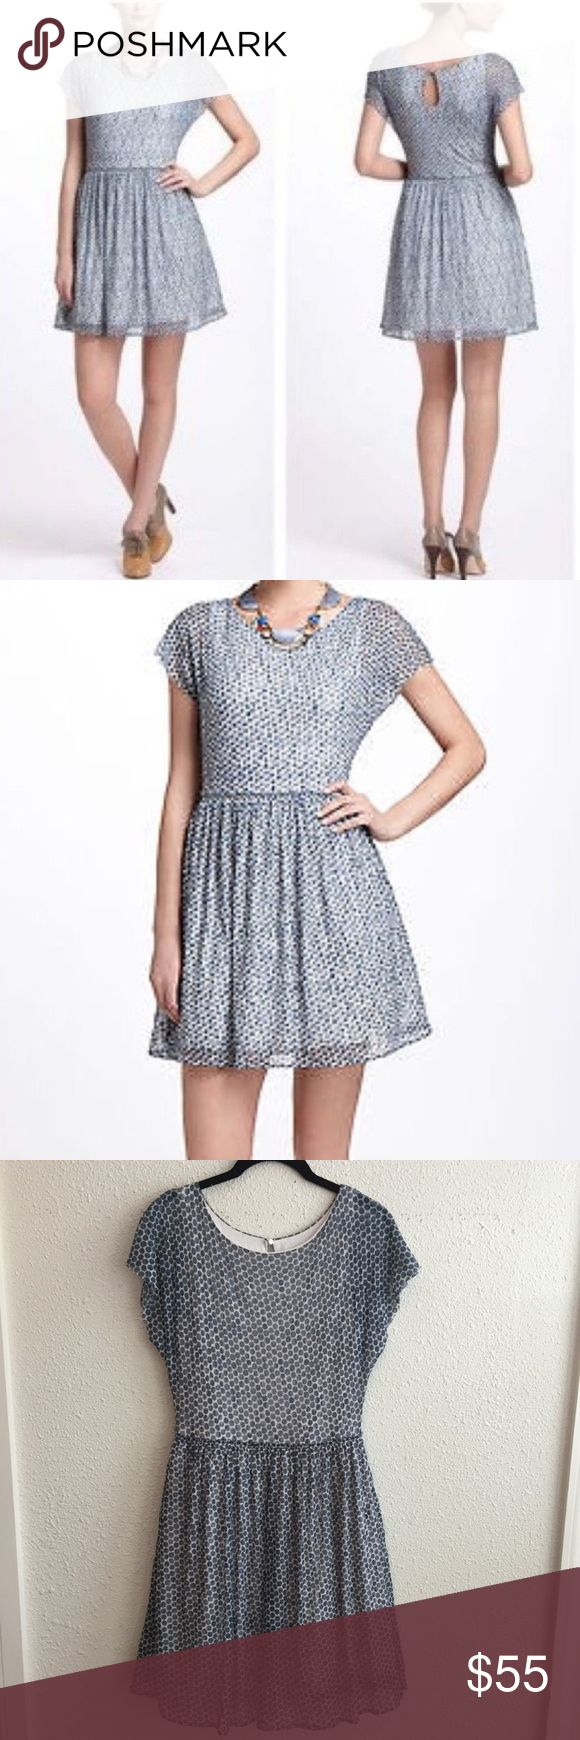 e17eb171cd0e1 Anthropologie Weston Wear Polka Dot Sheer Dress Anthropologie Weston Wear  Polka Dot Sheer Dress. Size Small. In great condition. Blue grey ish color.